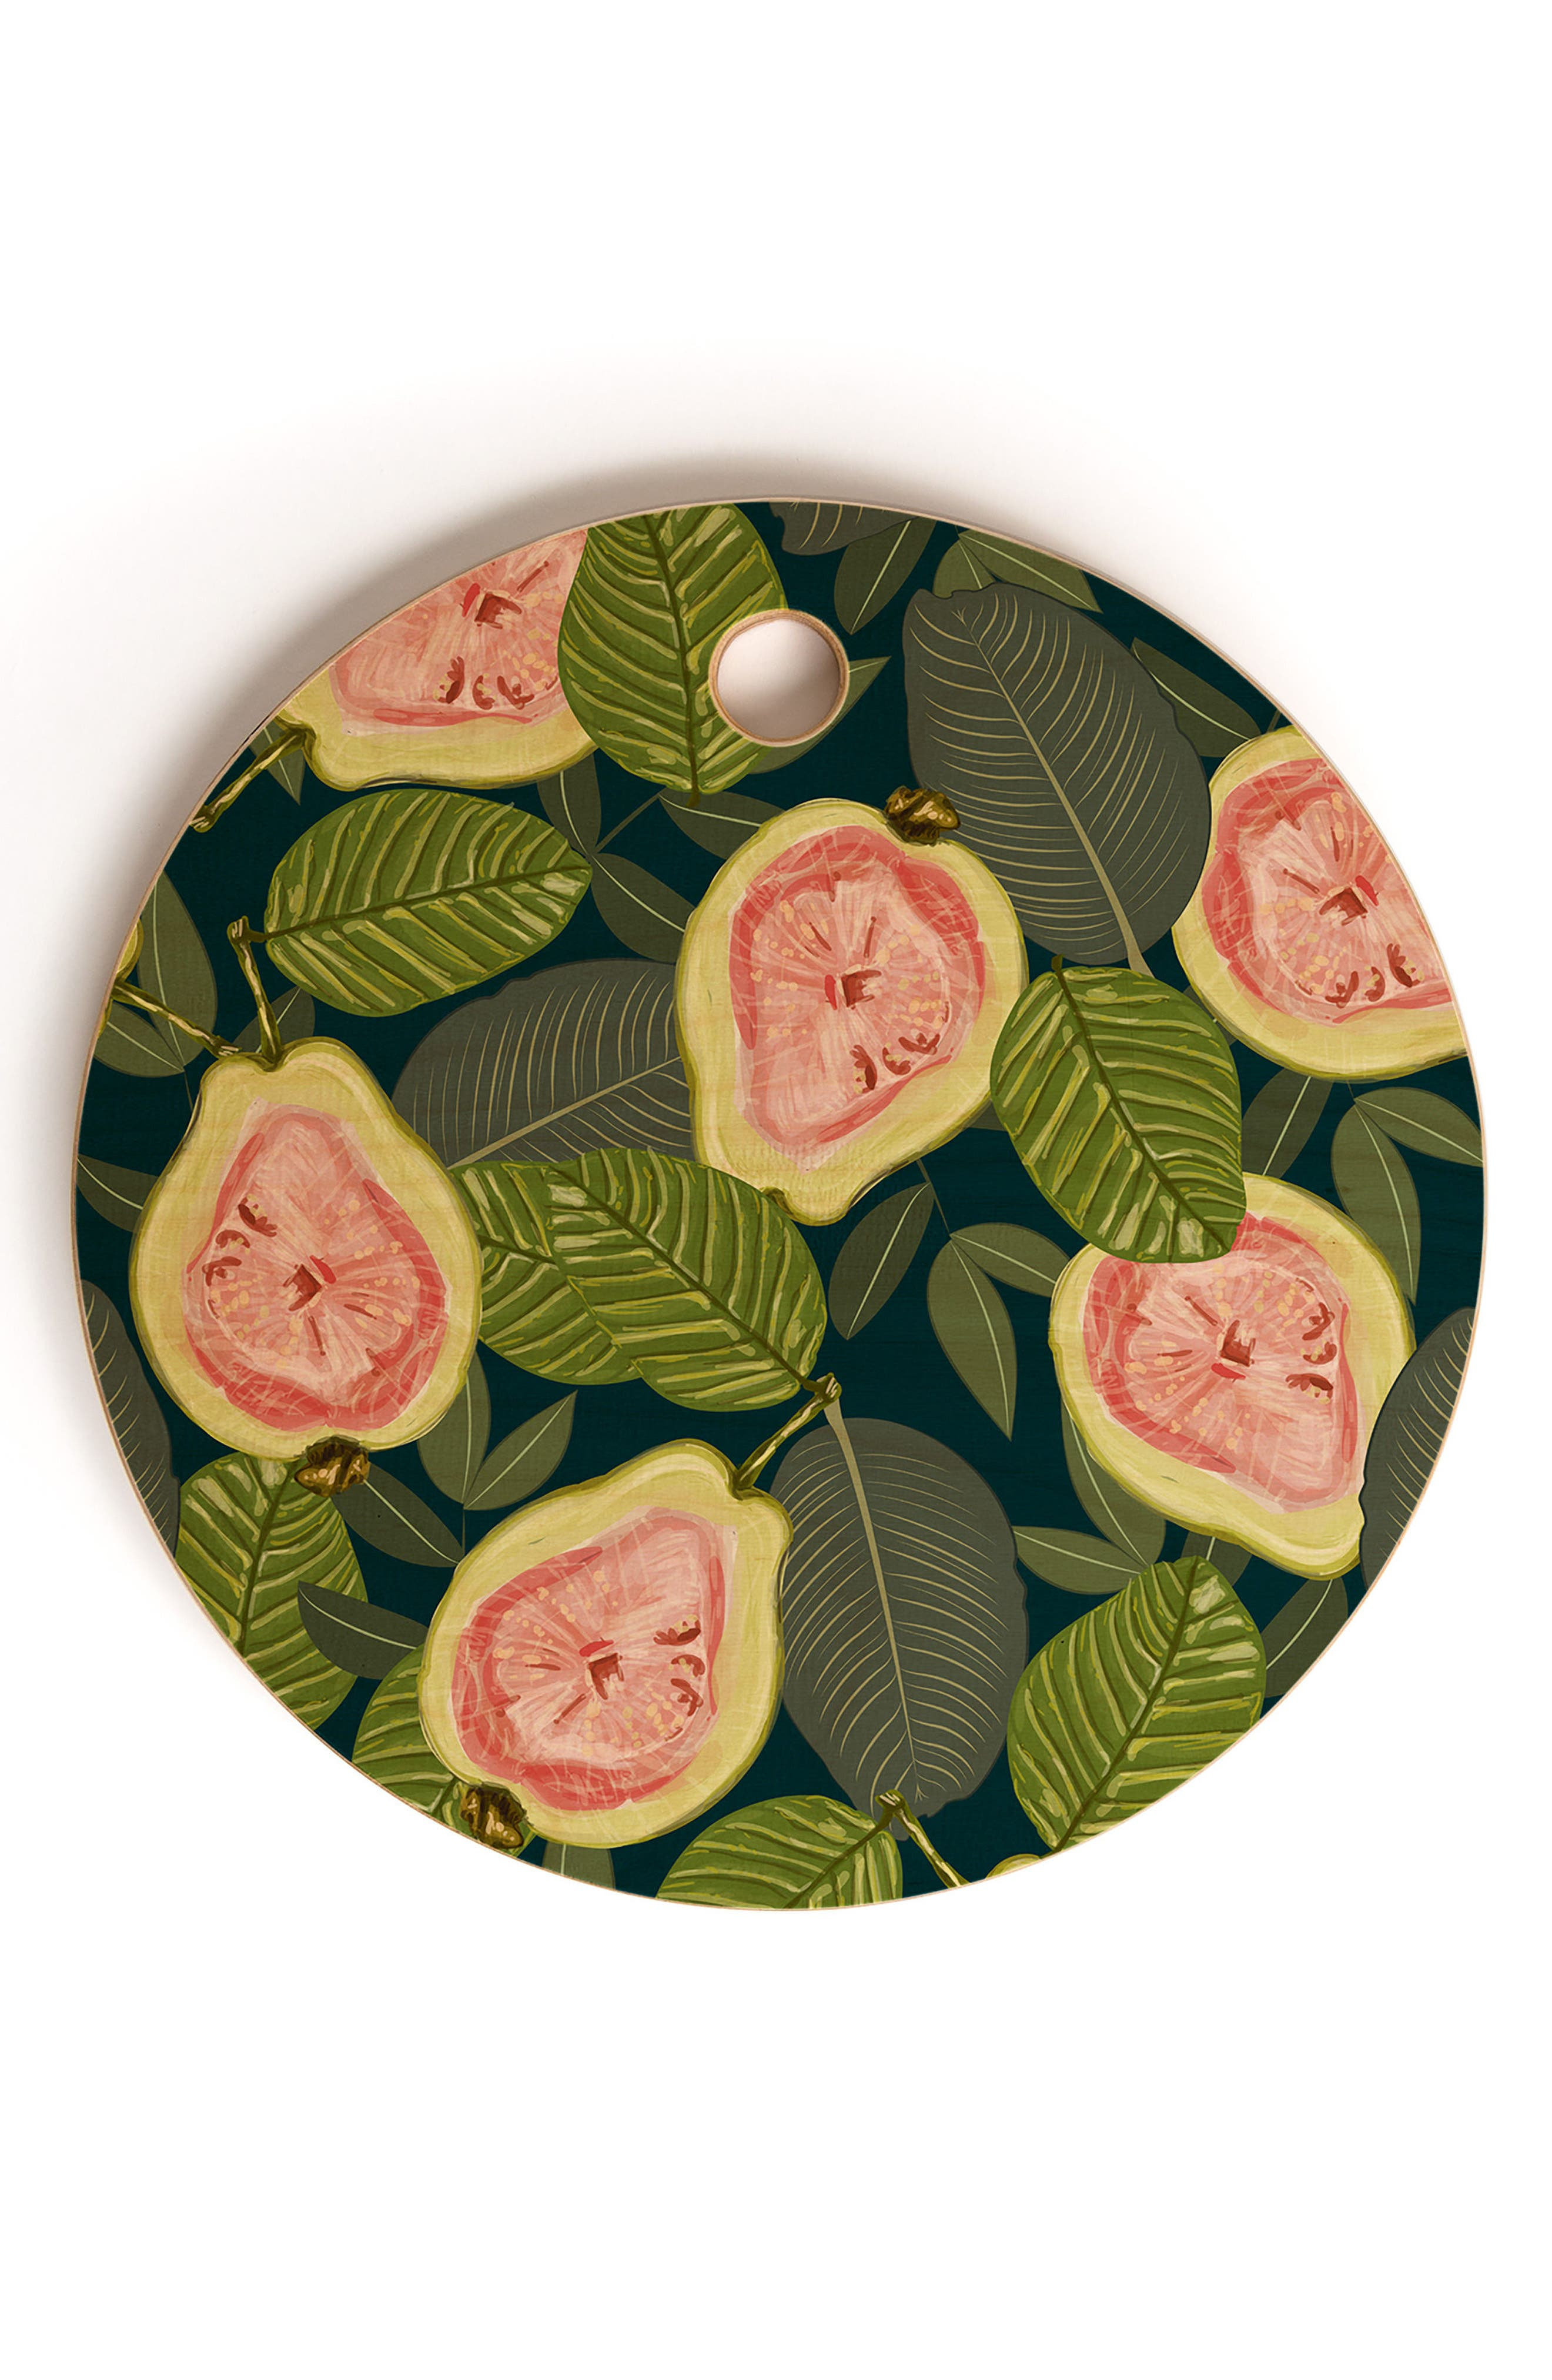 83 Oranges Guava Cutting Board,                             Main thumbnail 1, color,                             PINK